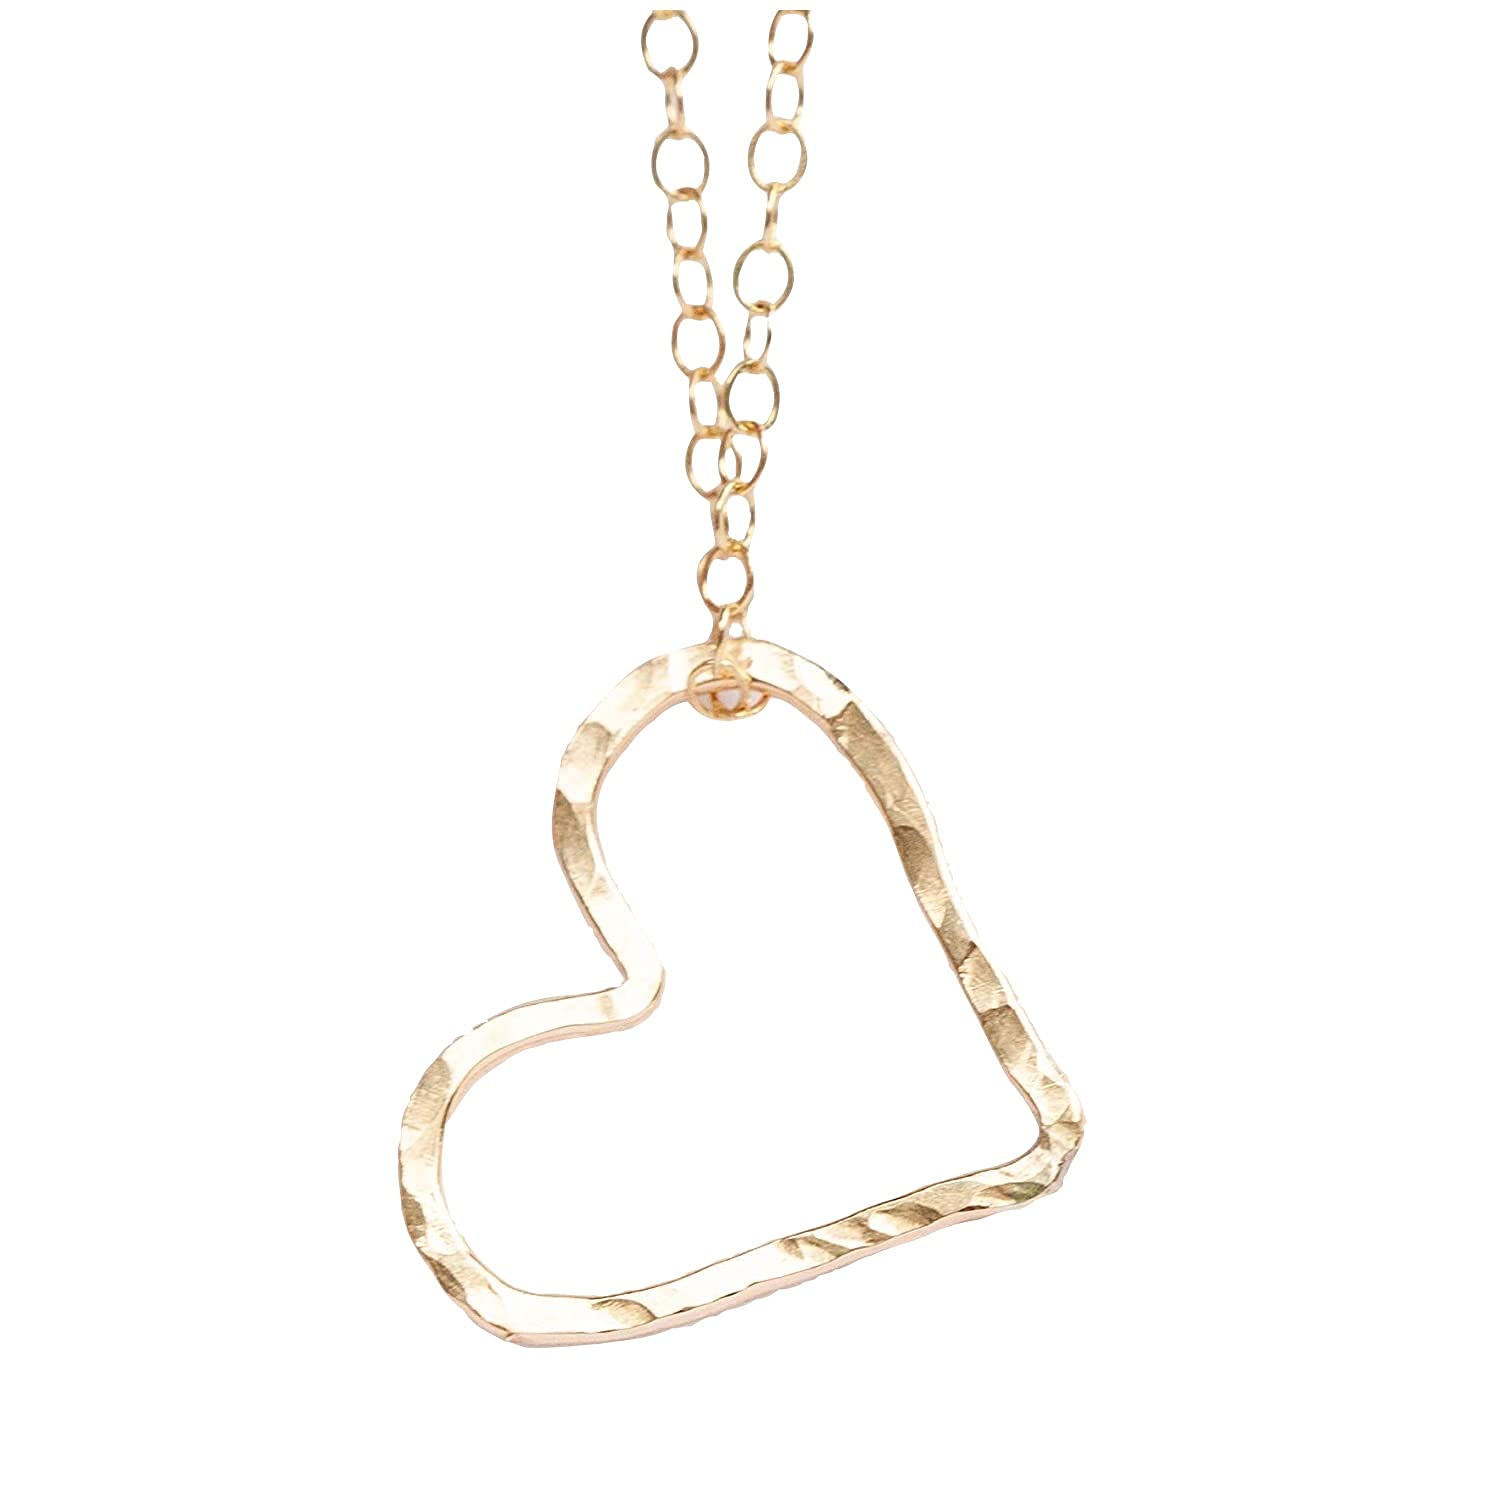 Floating Heart Pendant with 18 inch Necklace Gift for Mom Woman | Mothers Day Simple Gift Idea | Delicate Hammered Design 14k Gold Filled